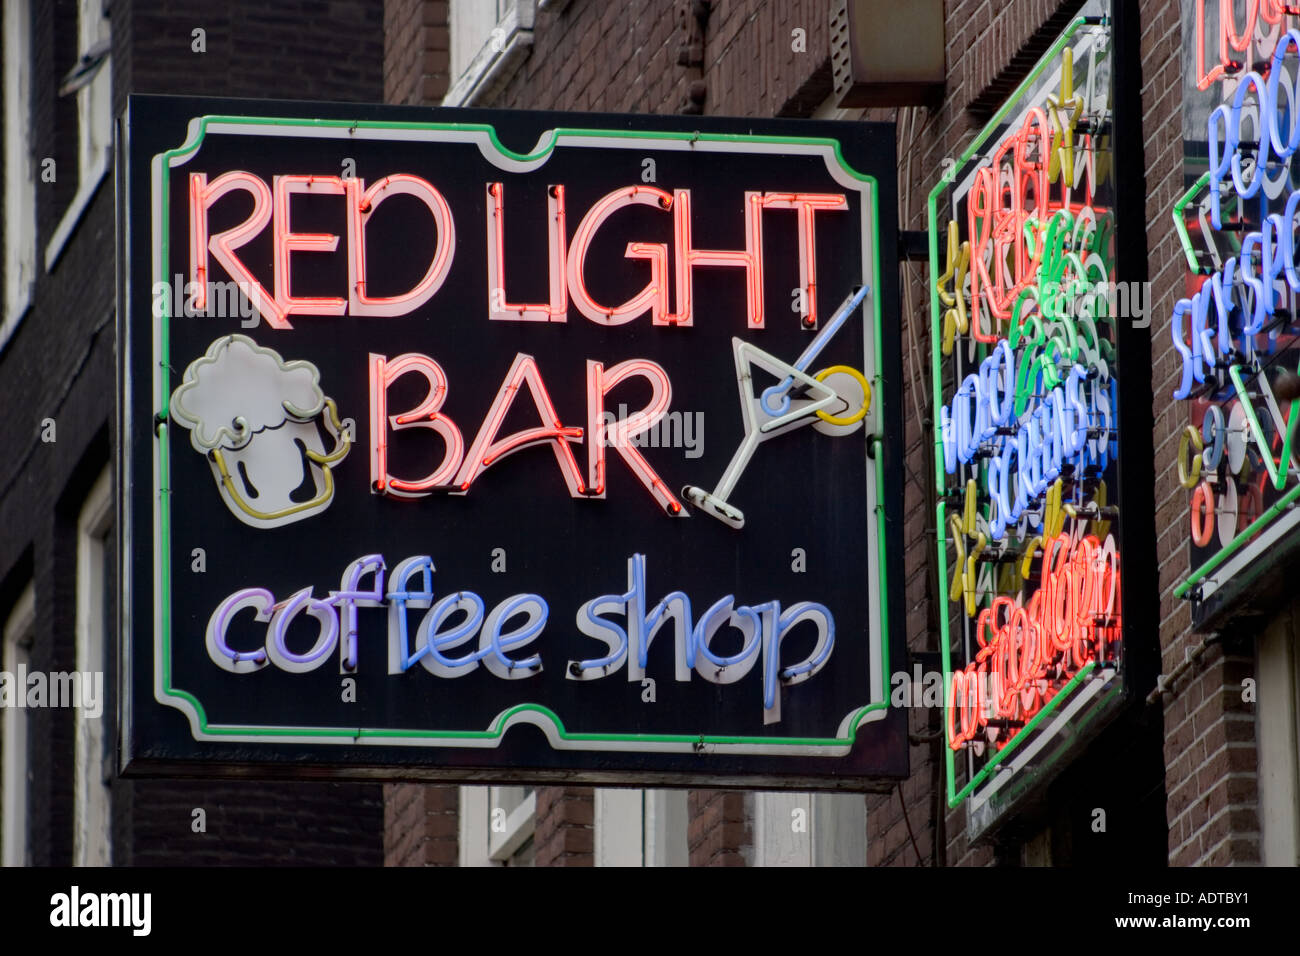 Red light bar amsterdam the netherlands stock photo 7707888 alamy red light bar amsterdam the netherlands aloadofball Image collections